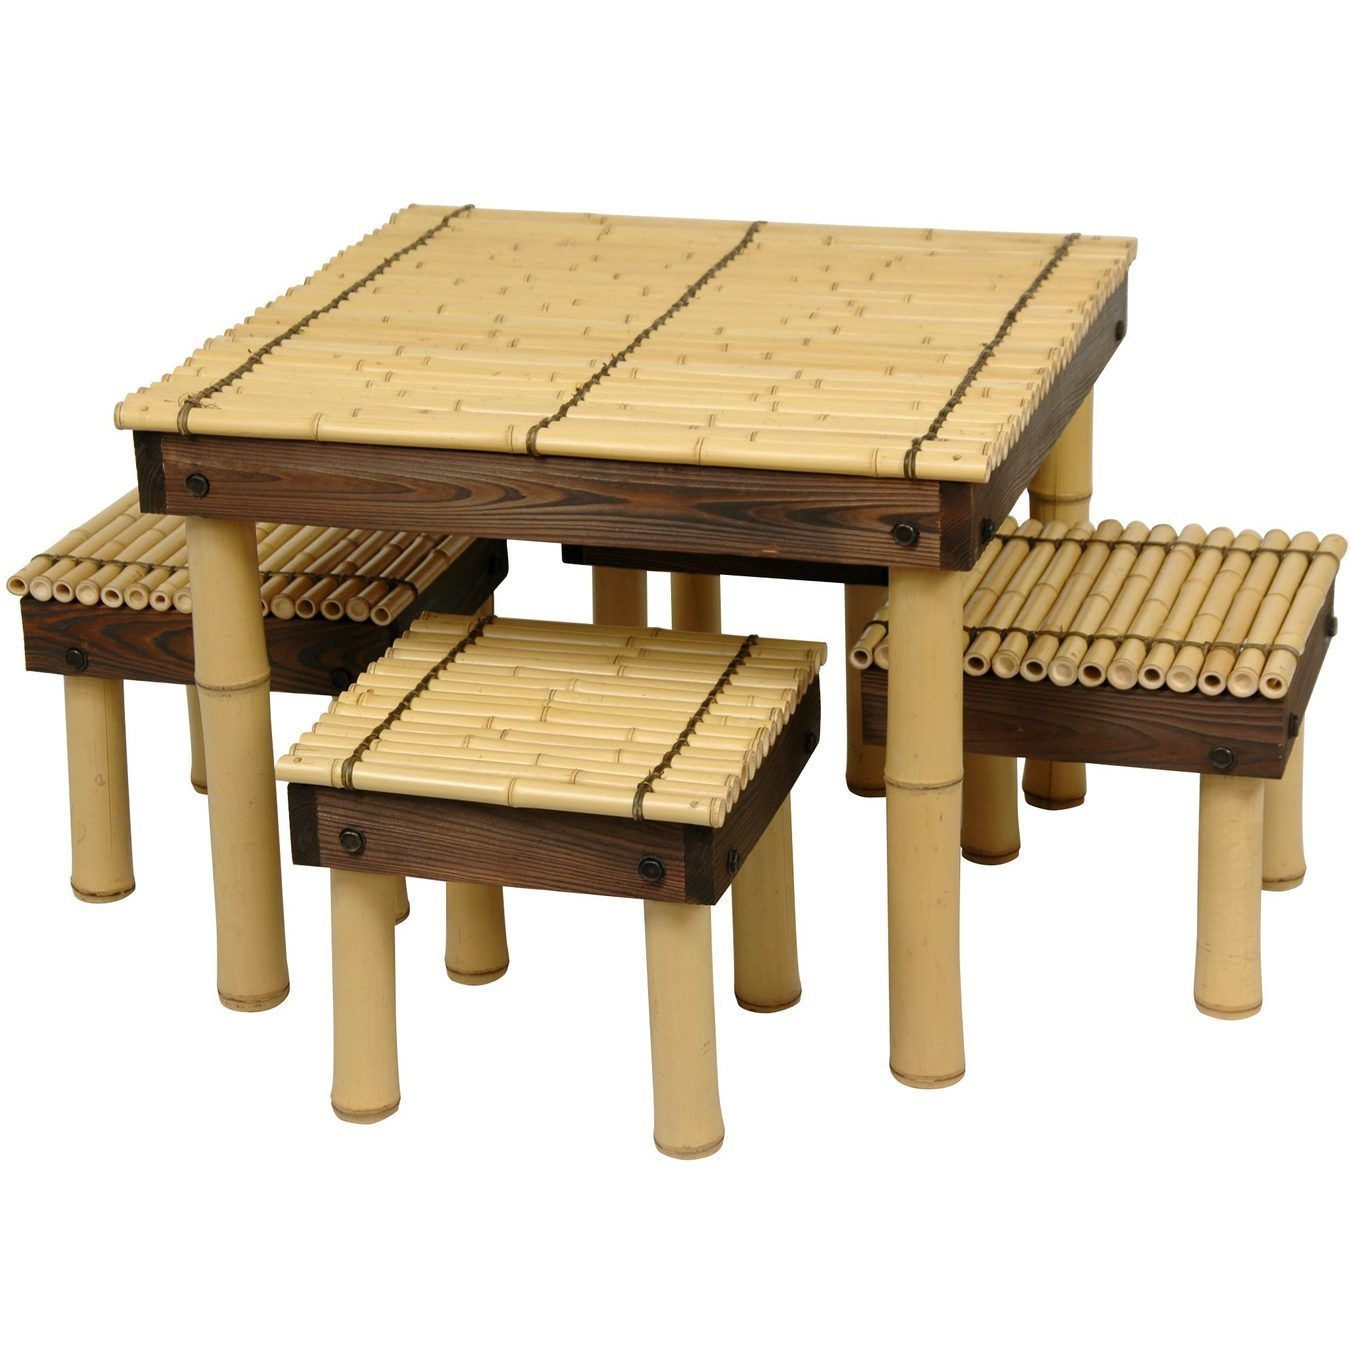 Glass Coffee Table Philippines: Zen Bamboo Coffee Table W/ Four Stools